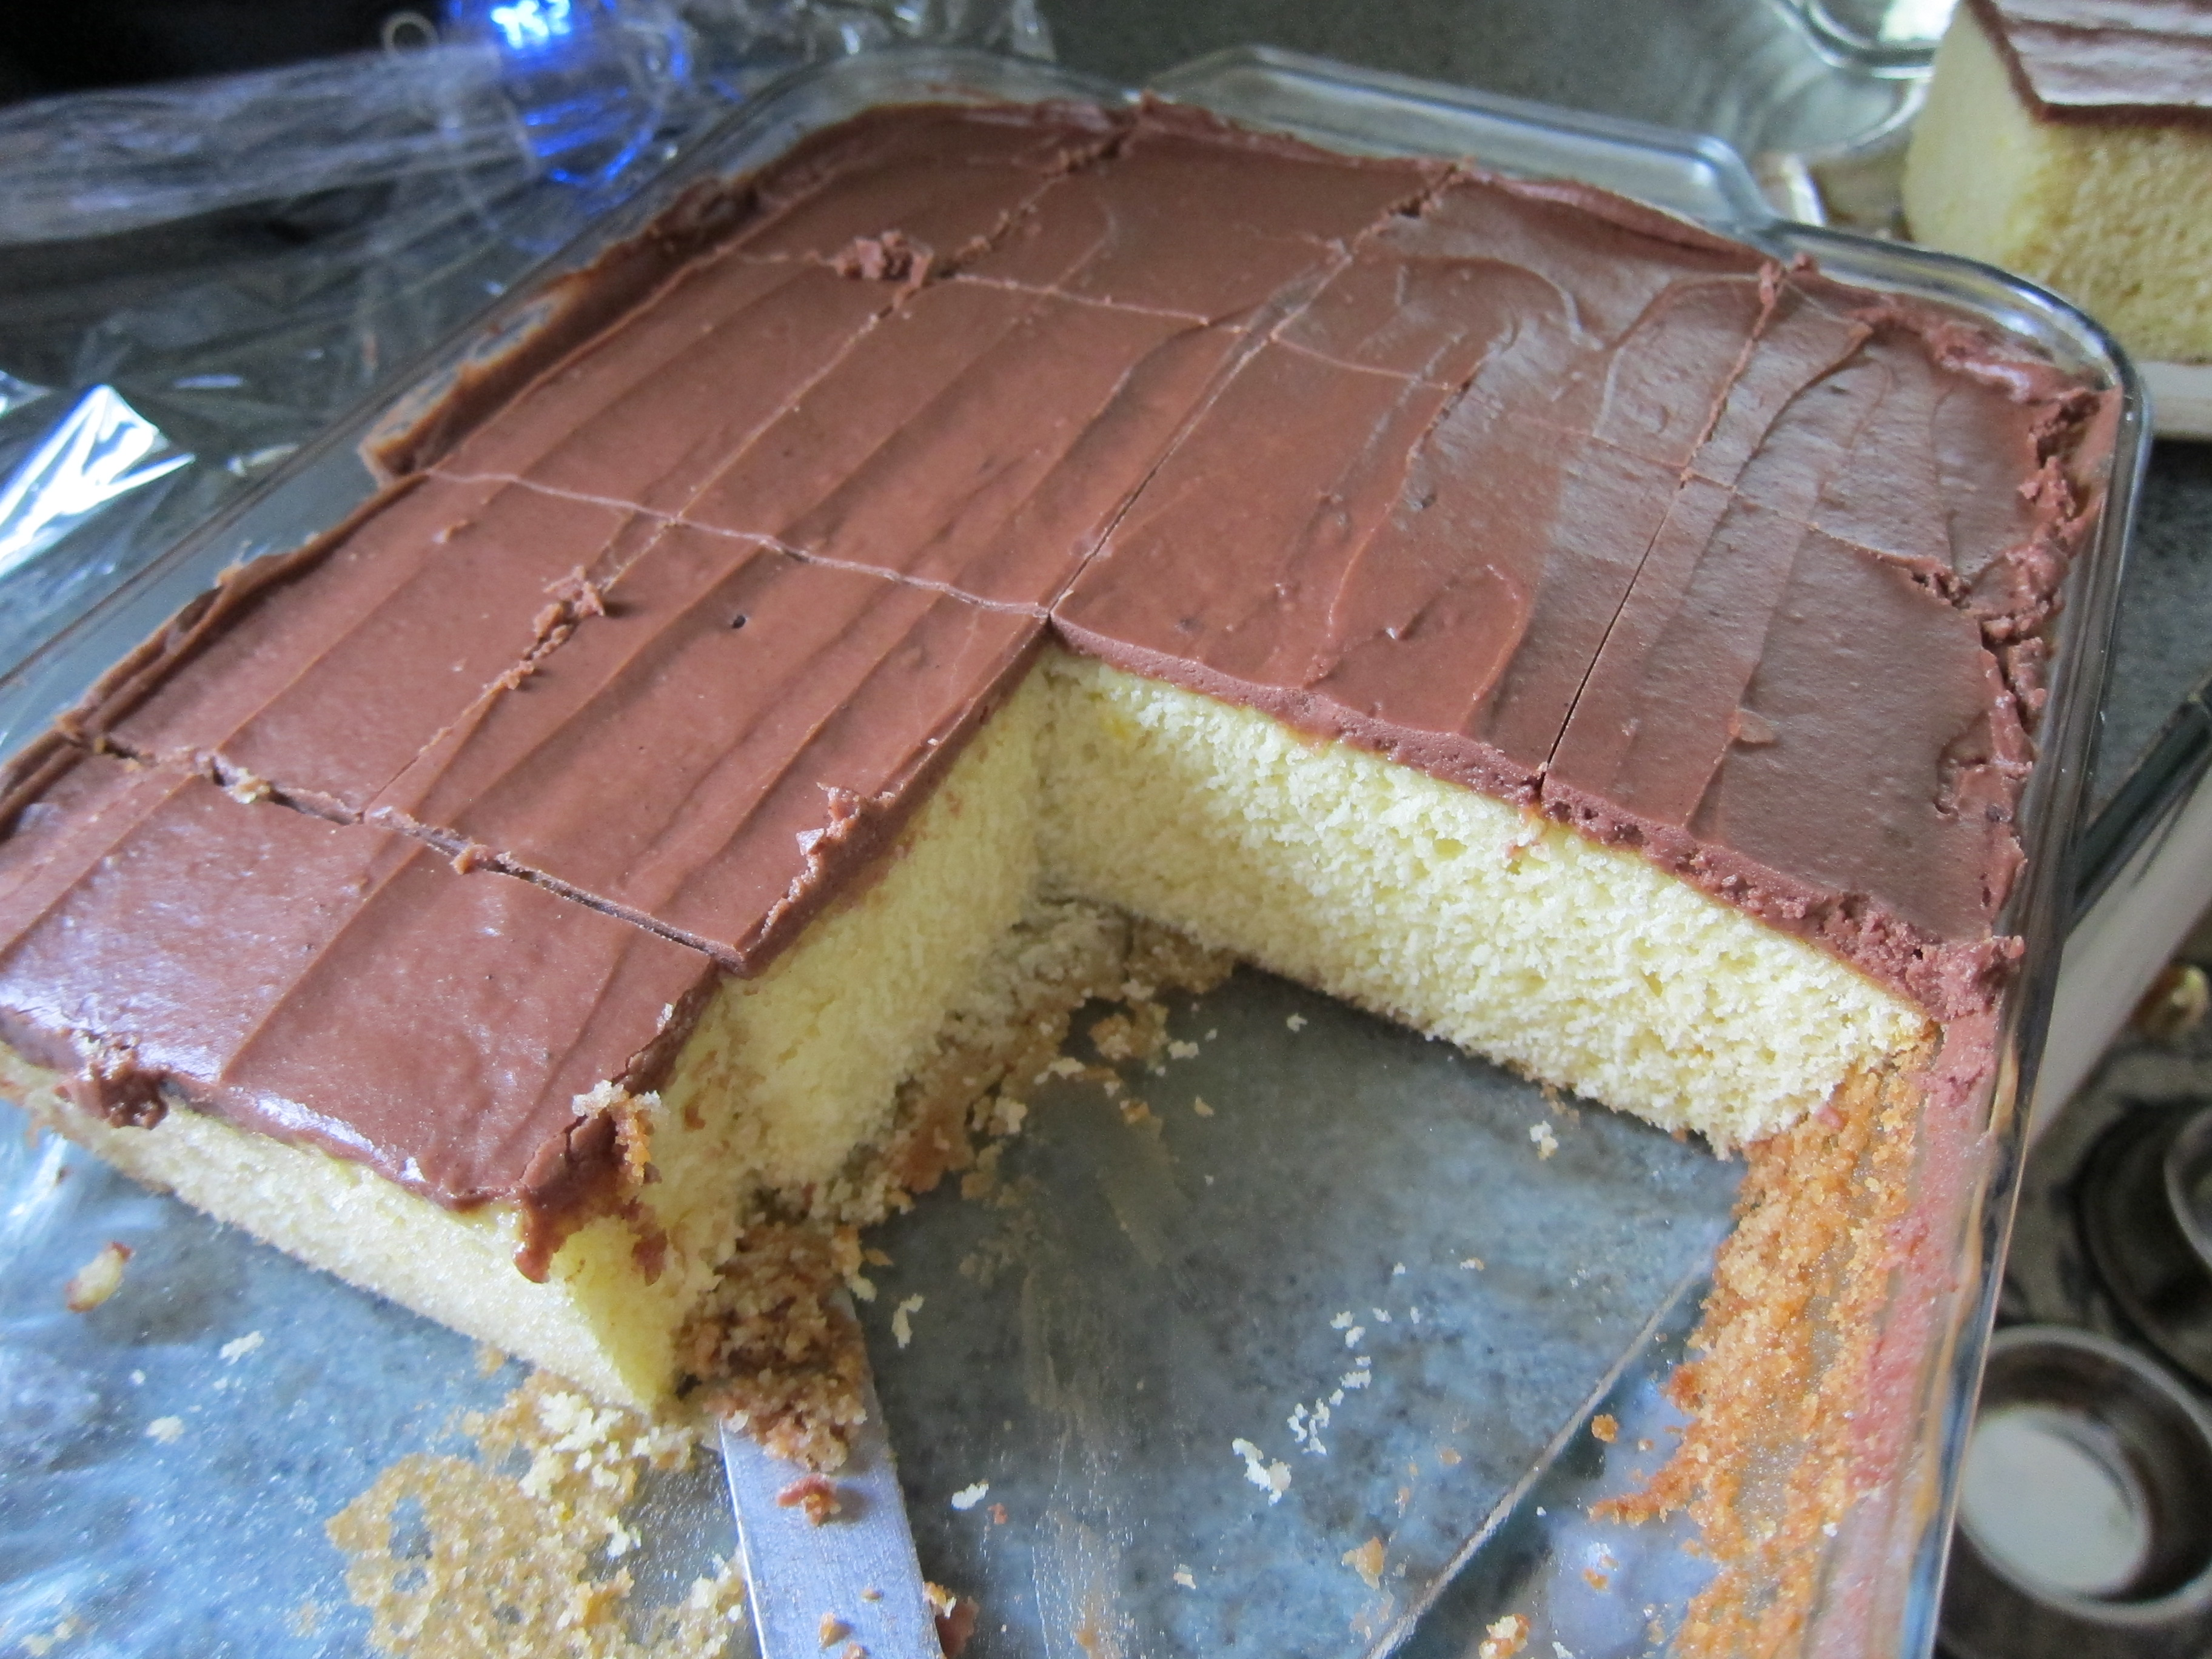 Easy cakes to bake at home - My Favorite Yellow Cake Moist Flavorful And Easy To Whip Up